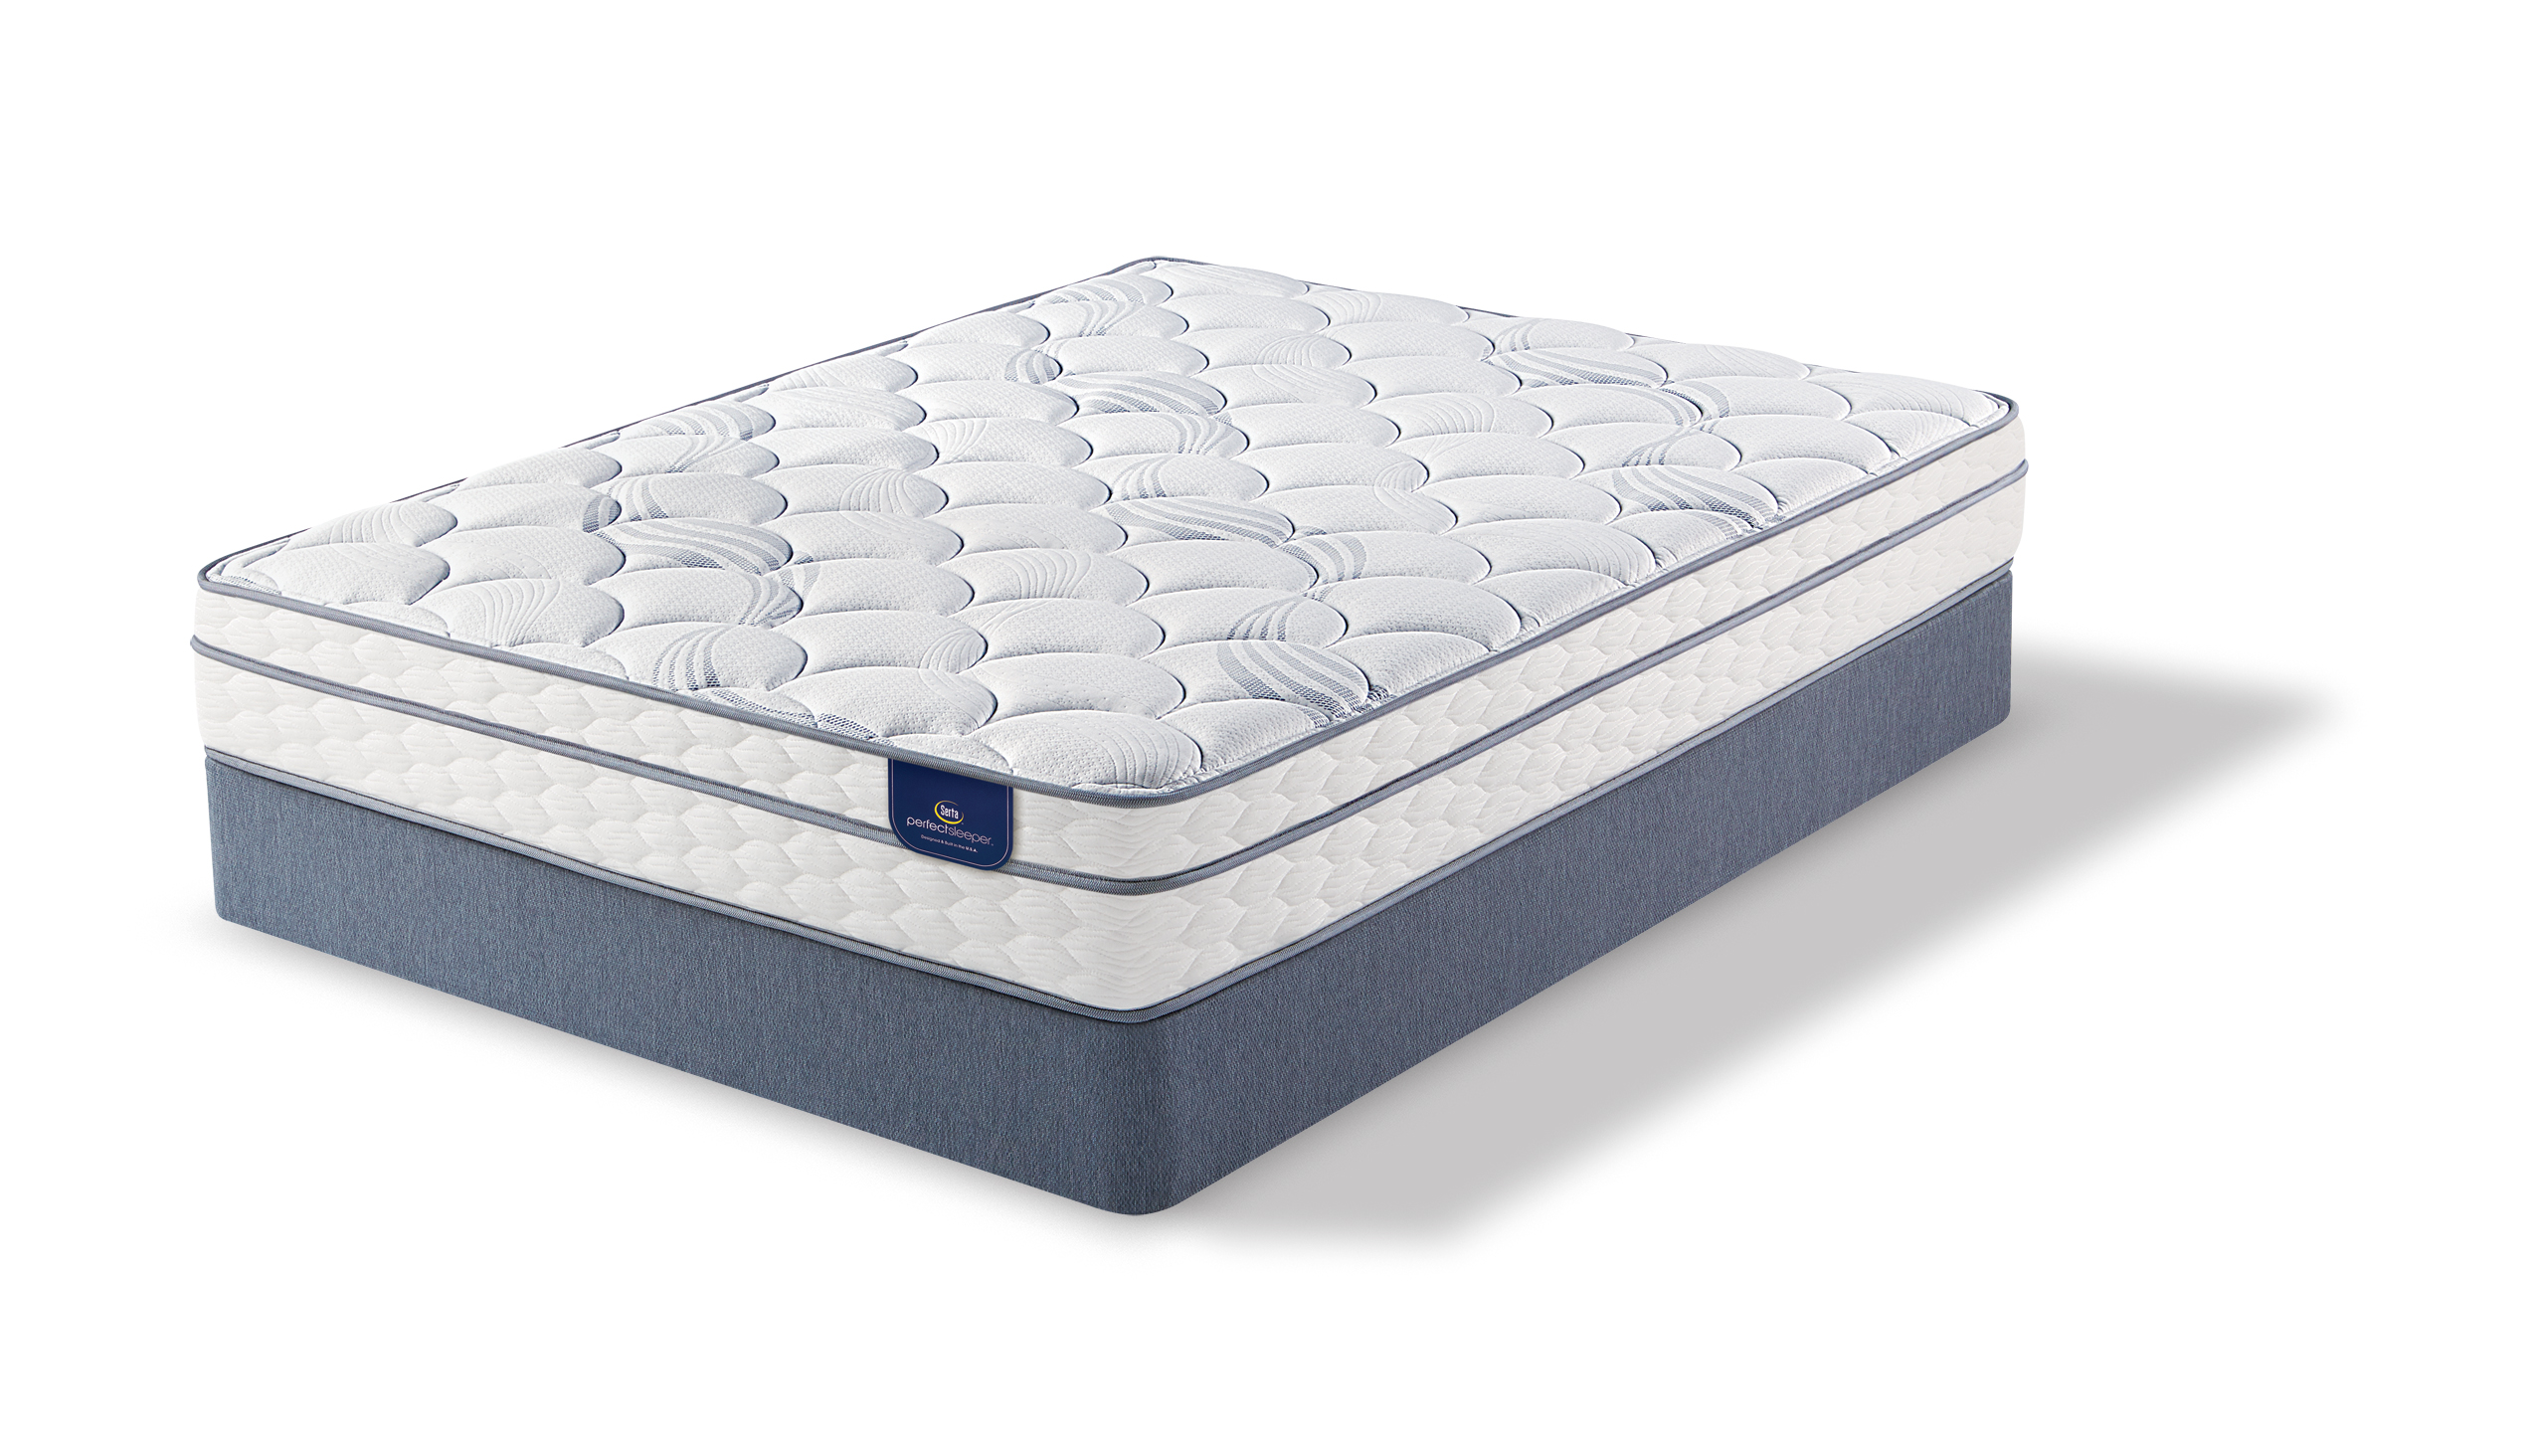 Bedding Barn Serta Perfect Sleeper Farmdale Euro Top